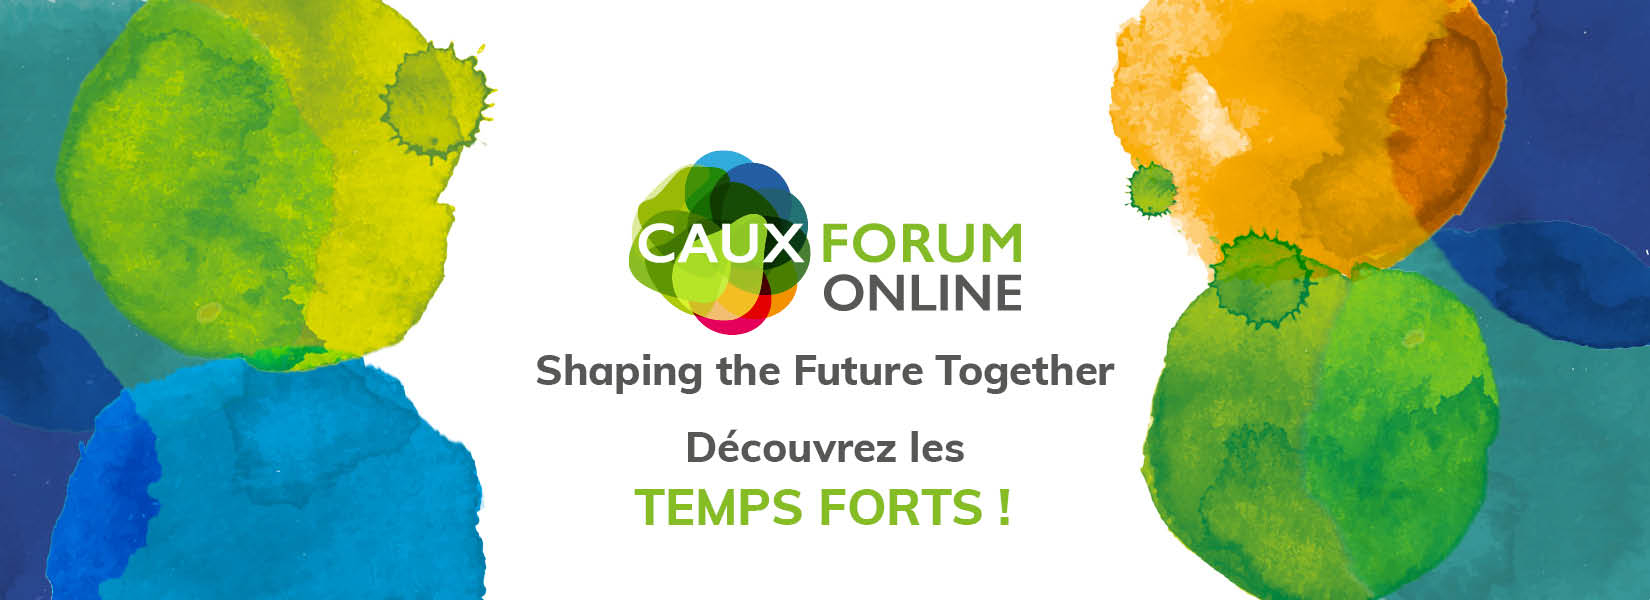 Caux Forum Discover the highlights 2020 FR